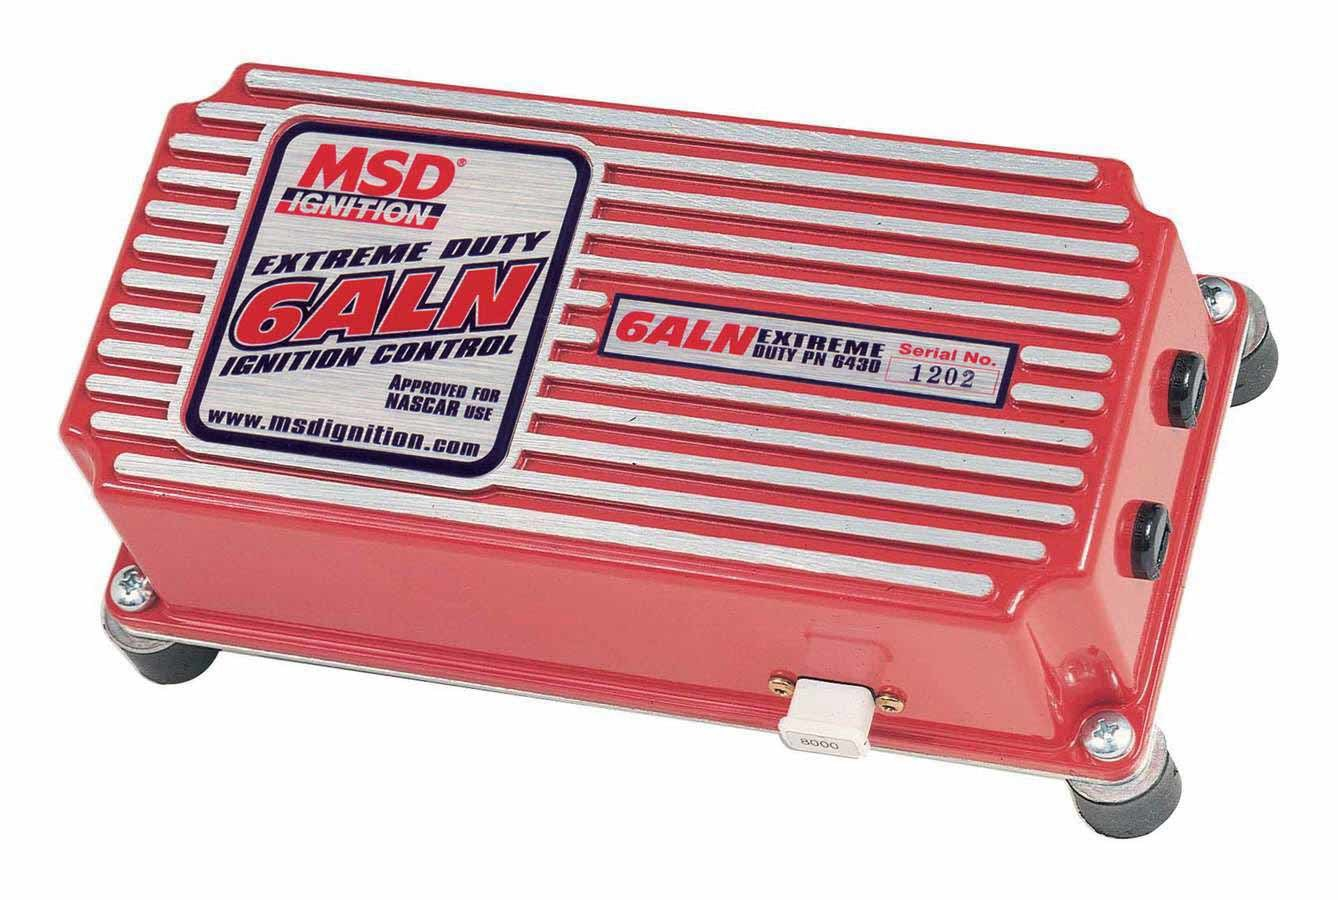 MSD Ignition 6430 Ignition Box, Extreme Duty 6ALN, Analog, CD Ignition, Multi-Spark, 45000V, Rev Limiter, Weathertight Connectors, Each